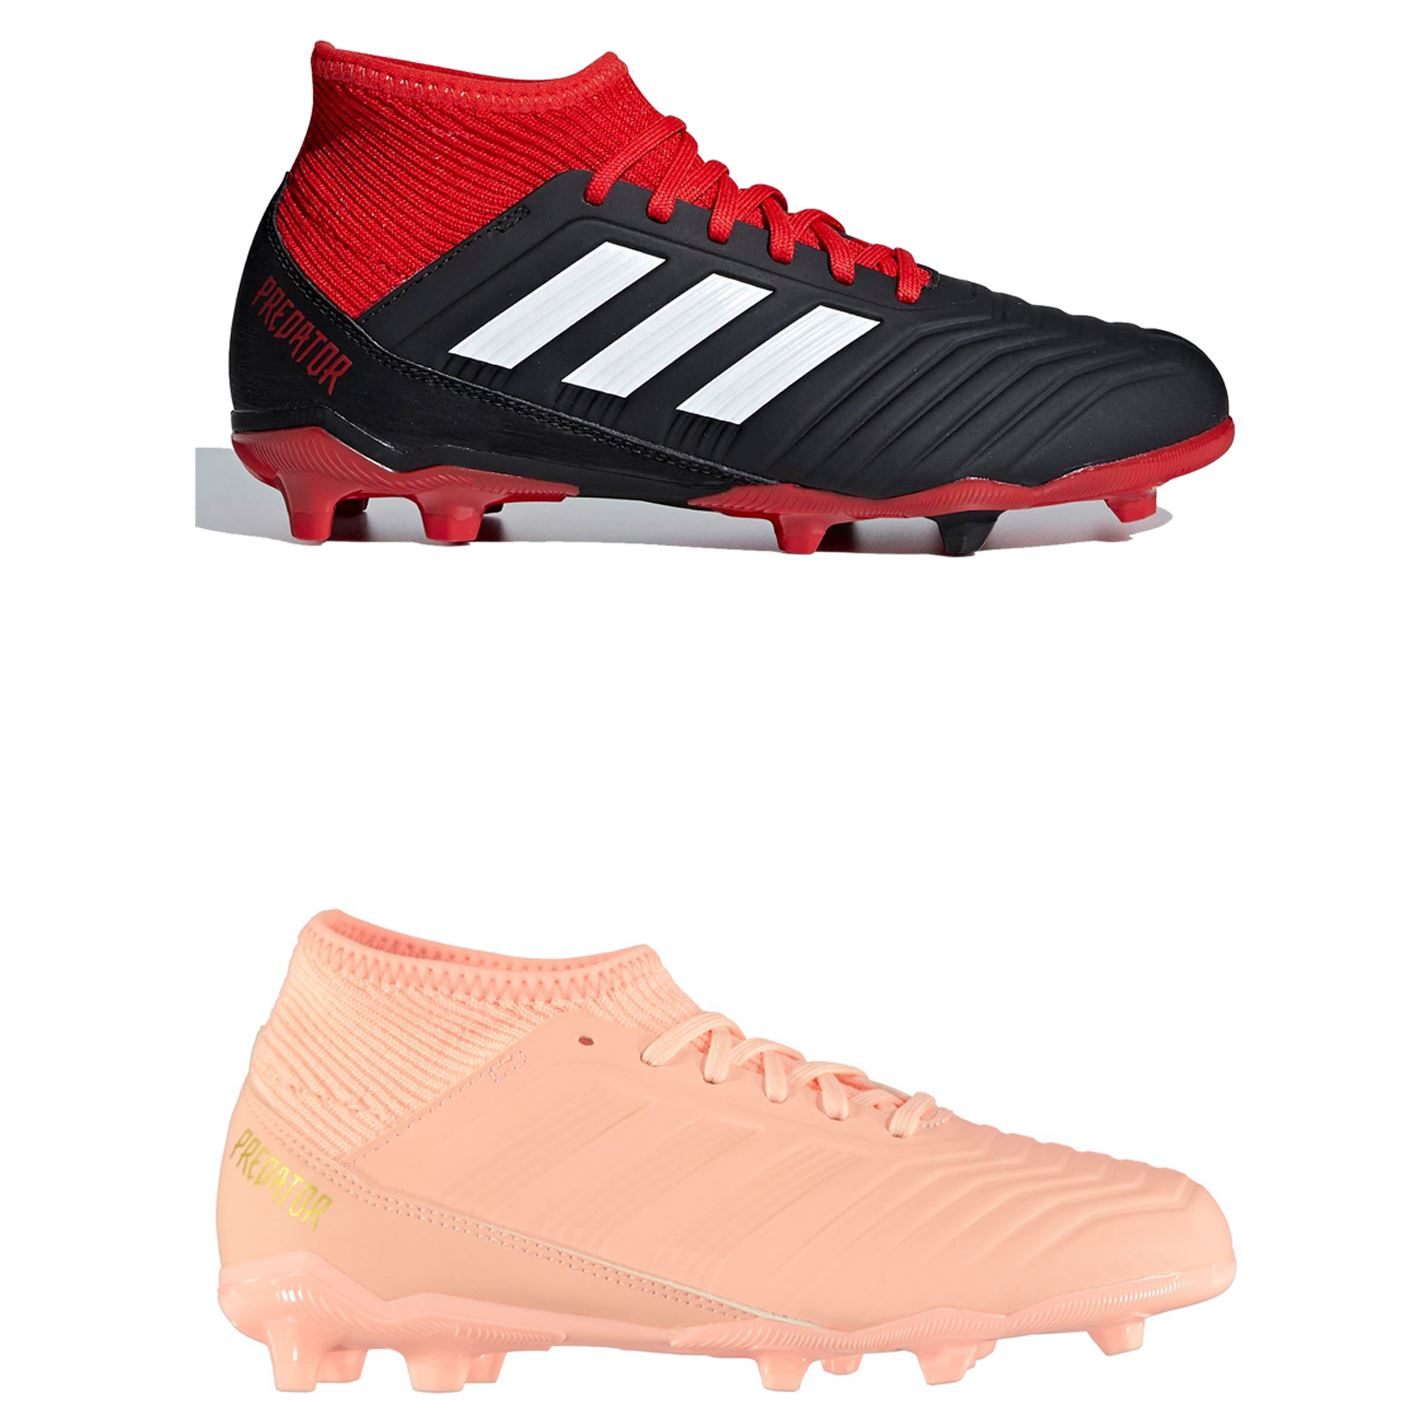 17 Best cleats images | Cleats, Soccer cleats, Football boots